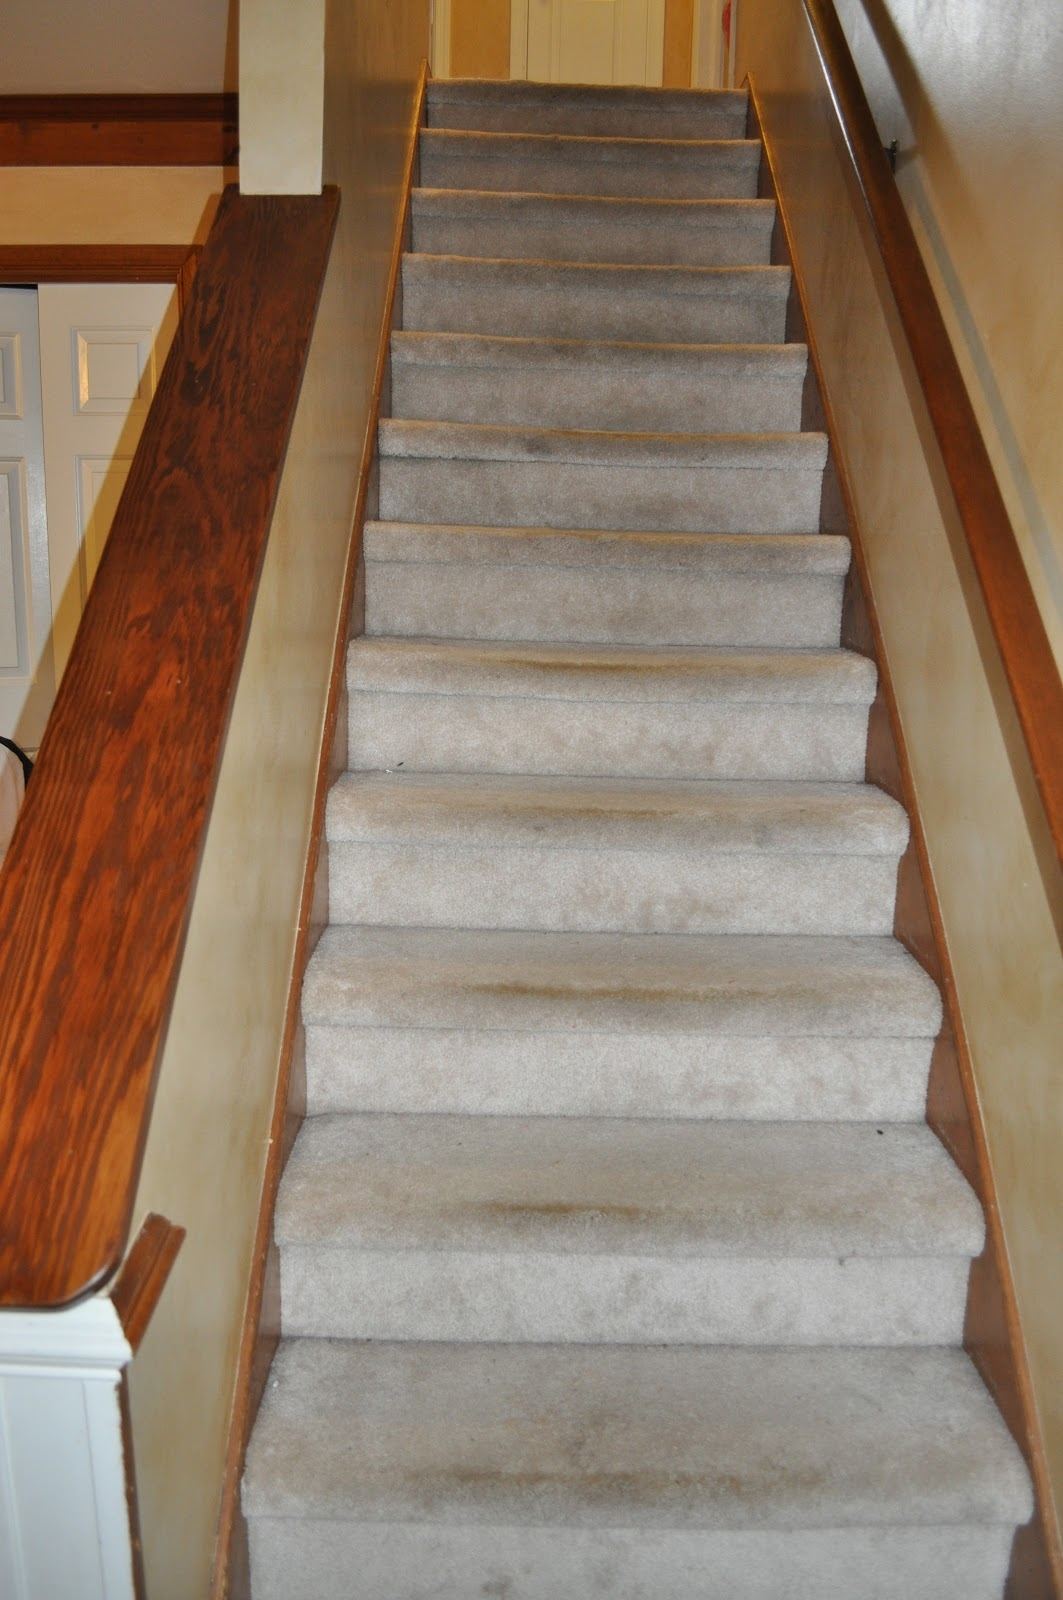 15 Best Bullnose Stair Tread Carpets Stair Tread Rugs Ideas | Best Rug For Stairs